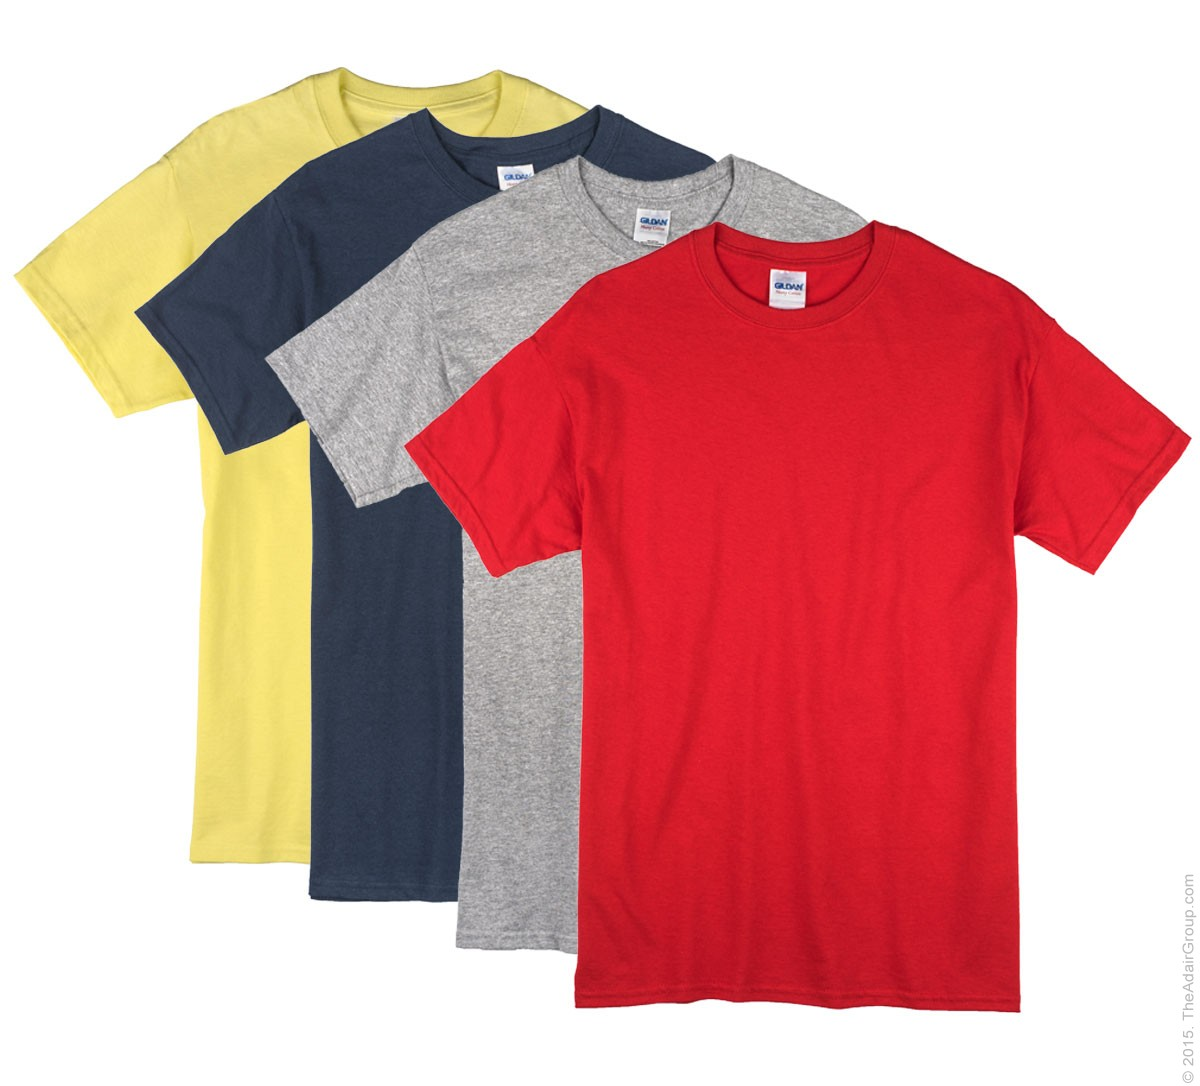 Short Sleeve T-Shirts in Bulk at Cheap Wholesale Prices